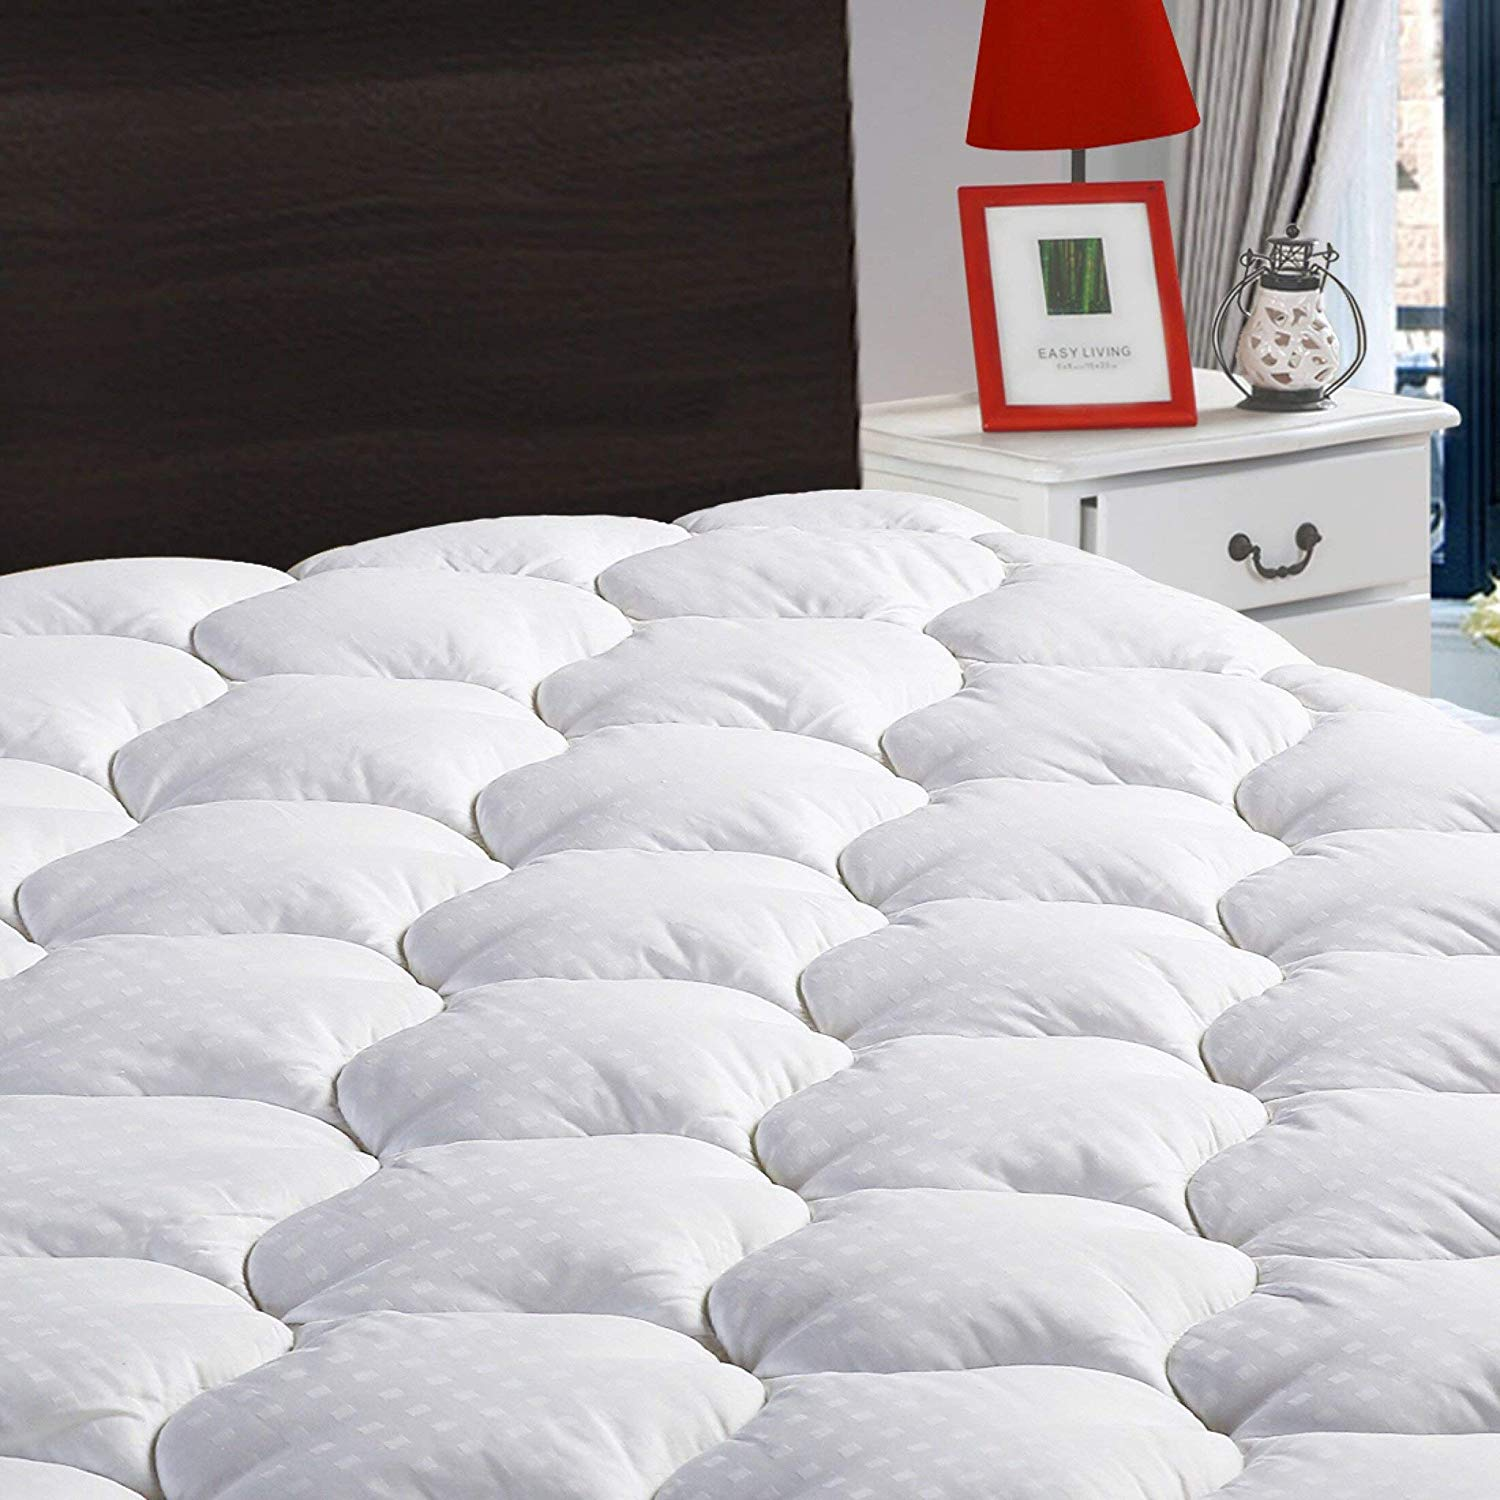 LEISURE TOWN best mattress pad review by www.dailysleep.org